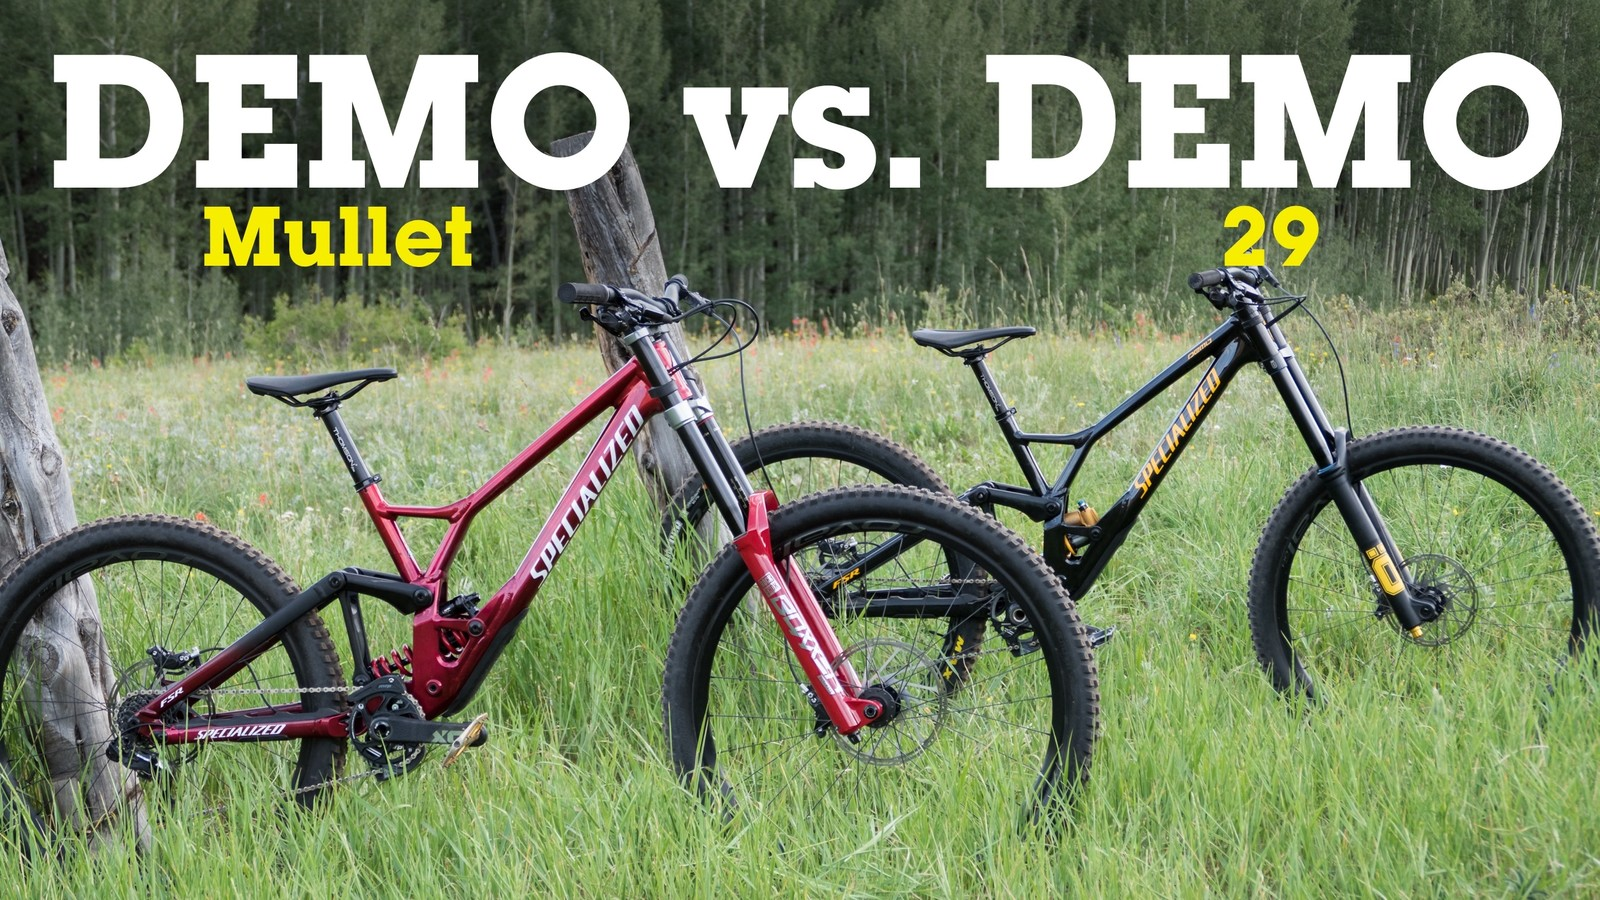 Demo Mullet vs Demo 29: Specialized DH Bikes Head-to-Head